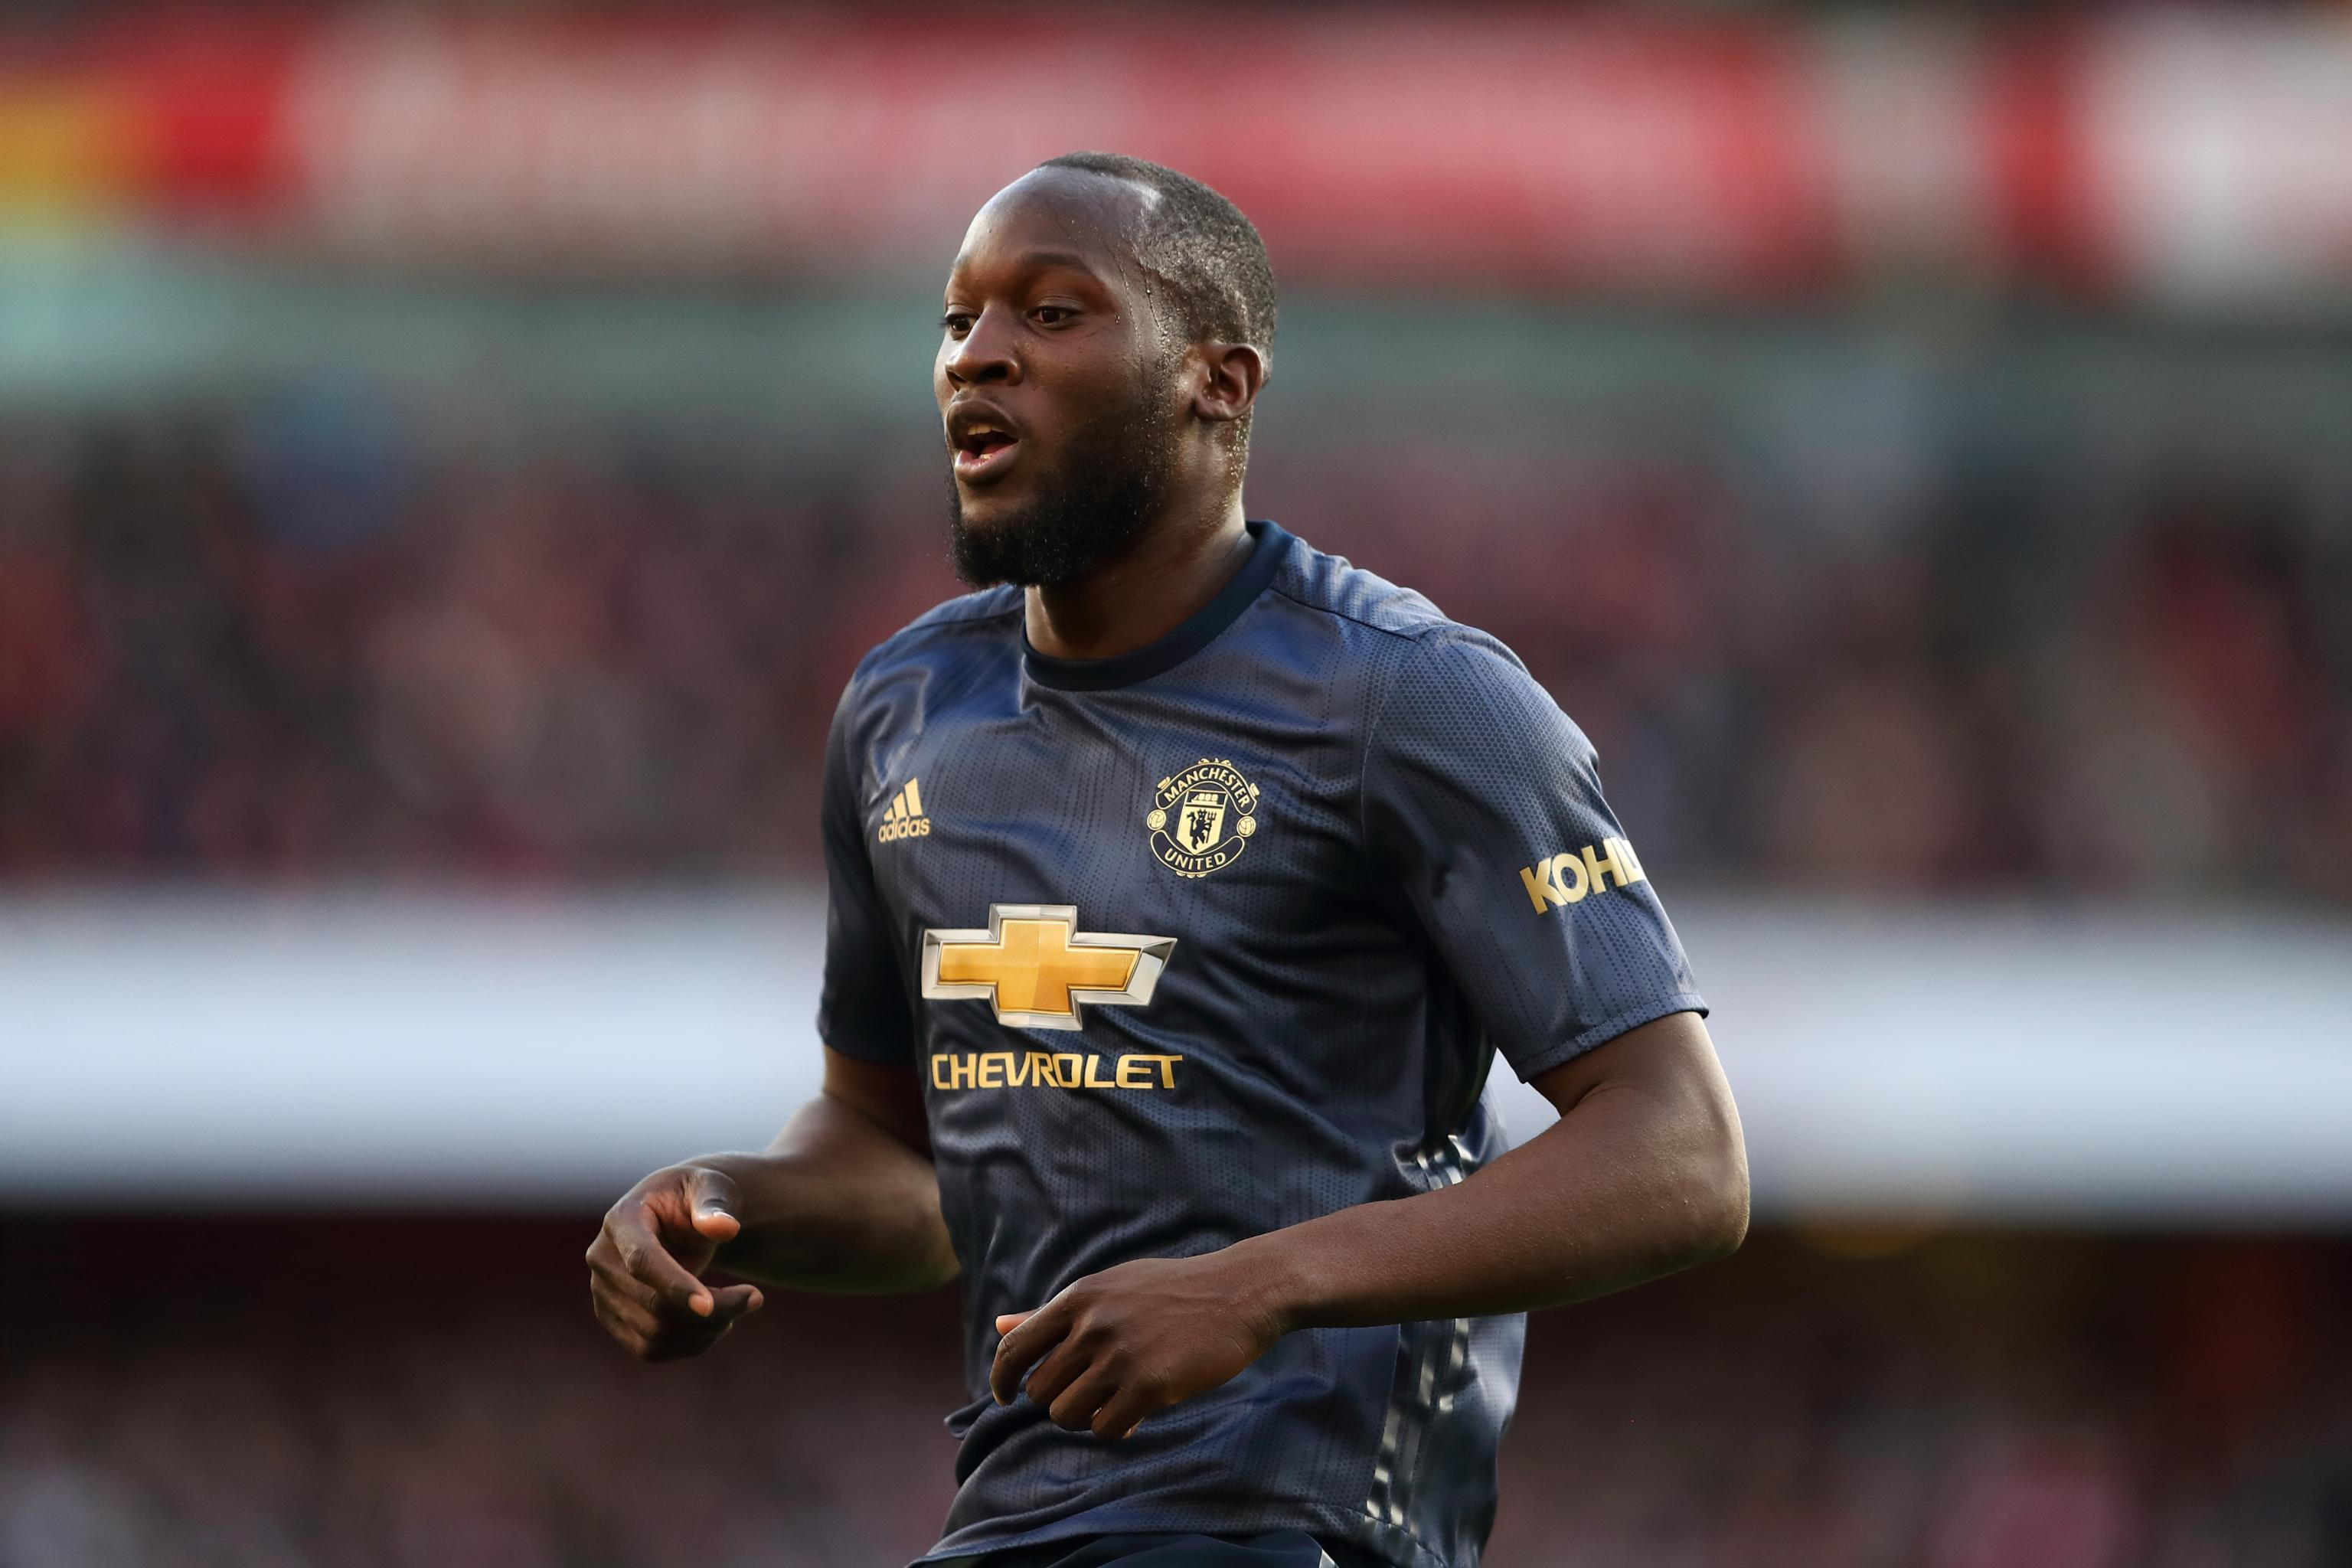 Belgium Send Romelu Lukaku Back To Manchester United To Recover From Foot Injury Bleacher Report Latest News Videos And Highlights